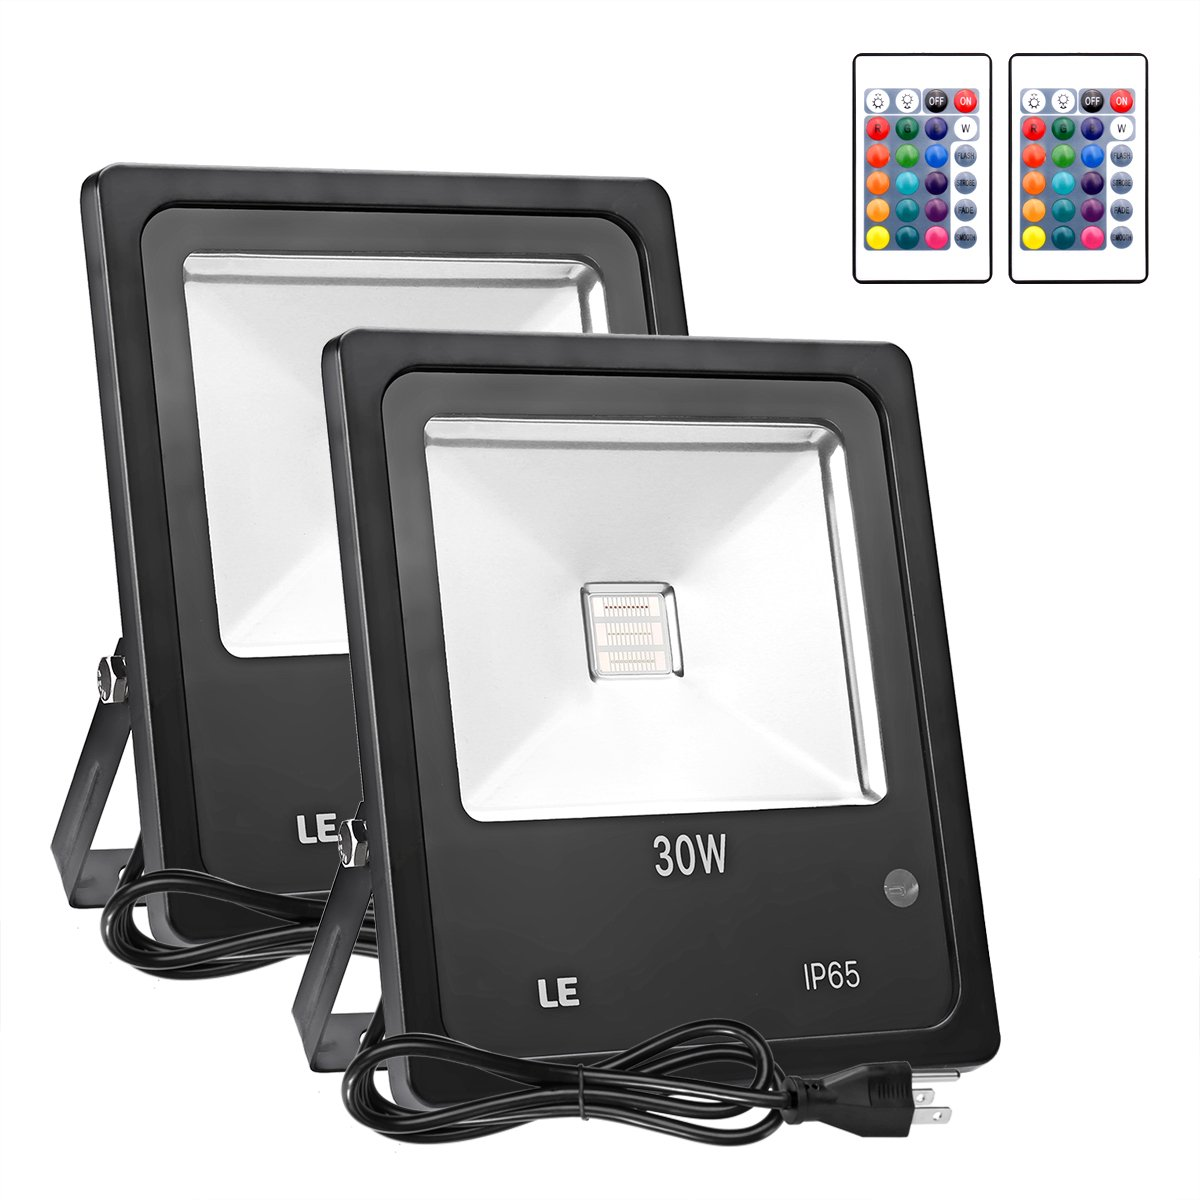 LE 30W Outdoor RGB LED Flood Lights with Remote Control, Multi Color, Dimmable, 16 Colors Change, 4 Modes, Waterproof, Wall Washer, for Garden, Yard, Warehouse, Pack of 2